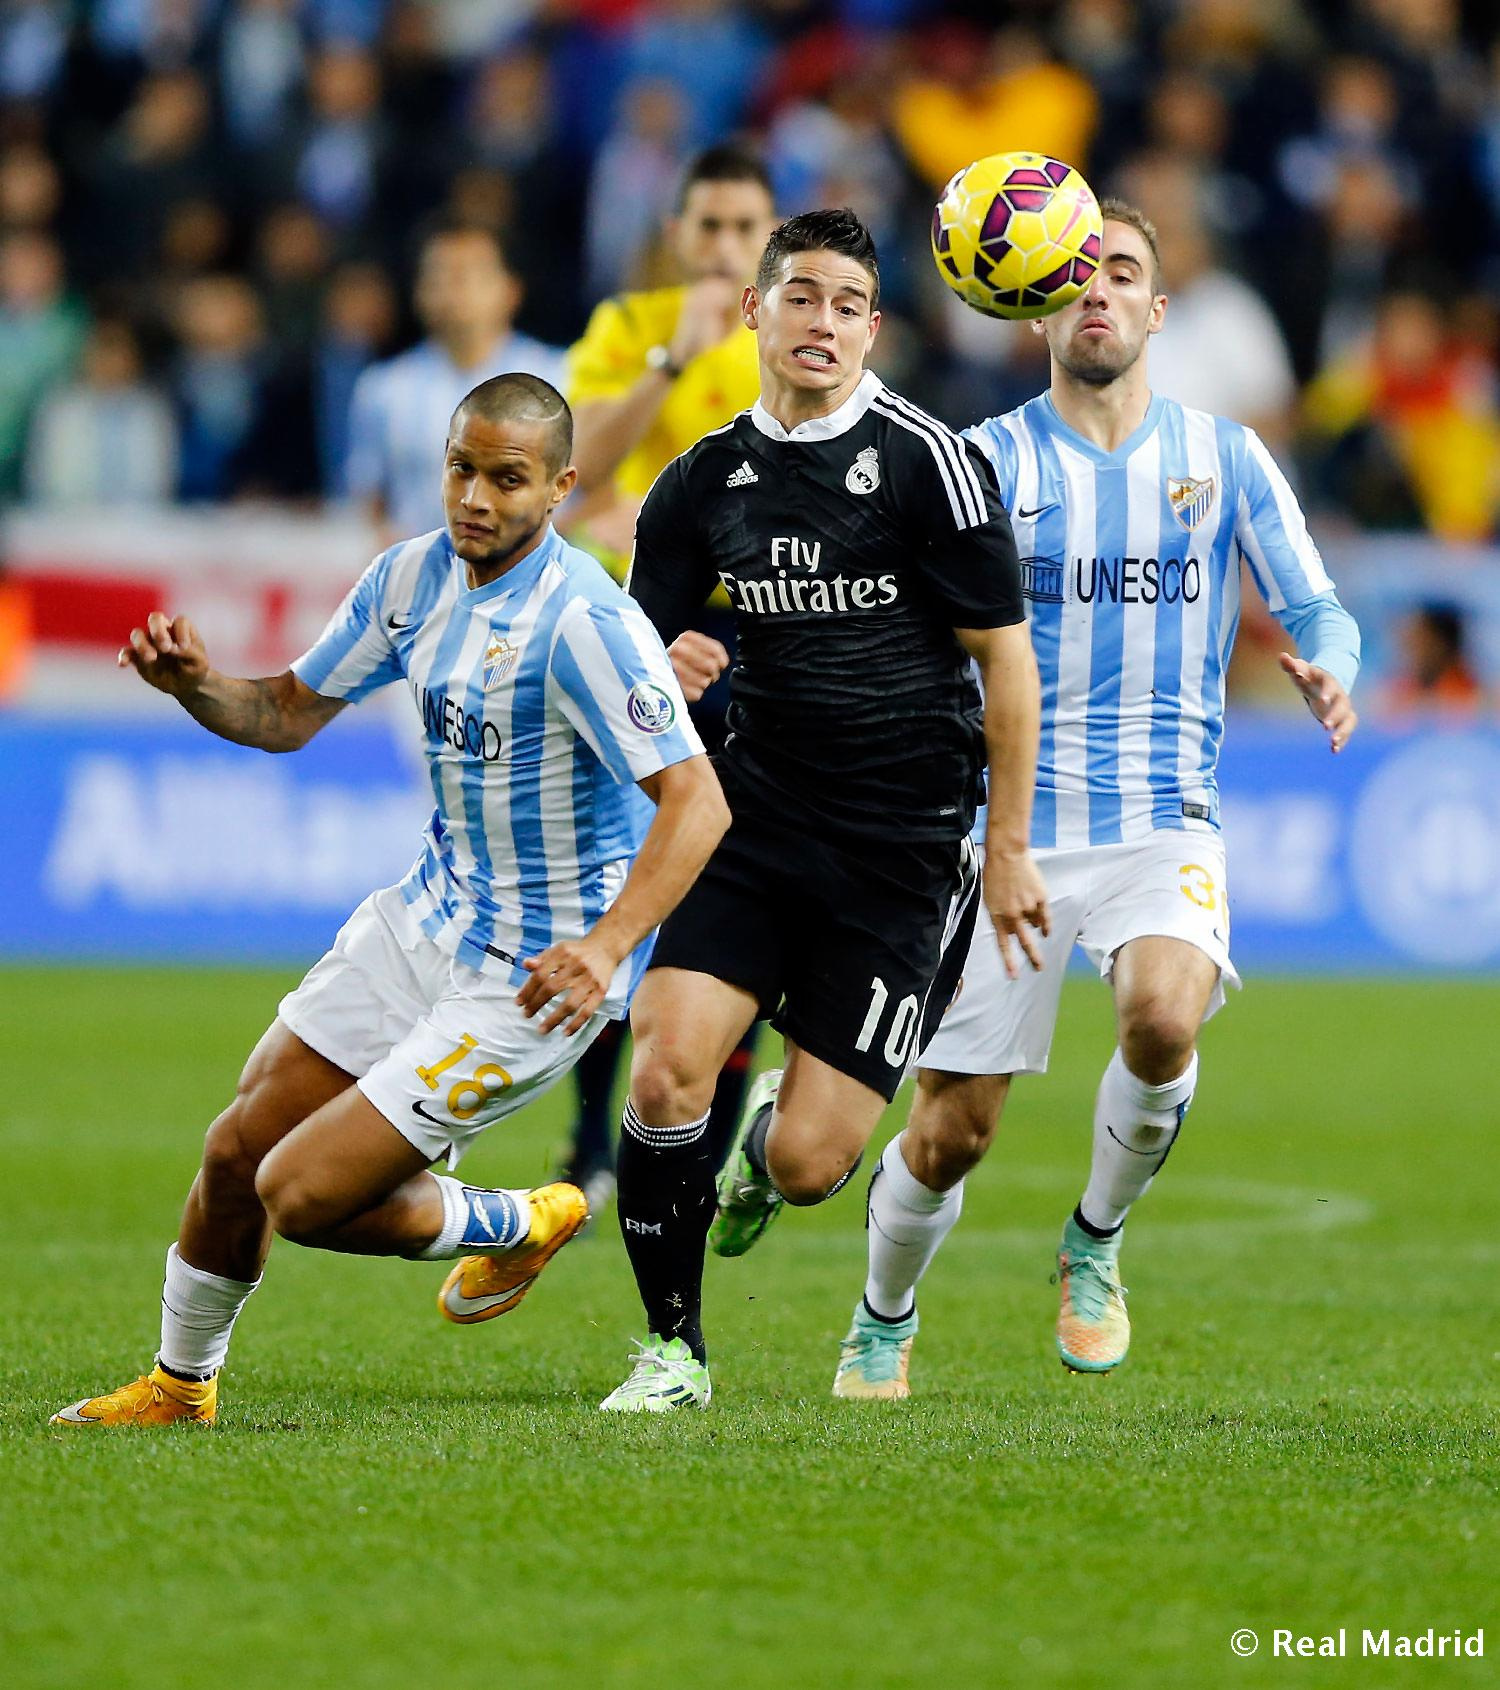 Real Madrid - Málaga - Real Madrid - 29-11-2014